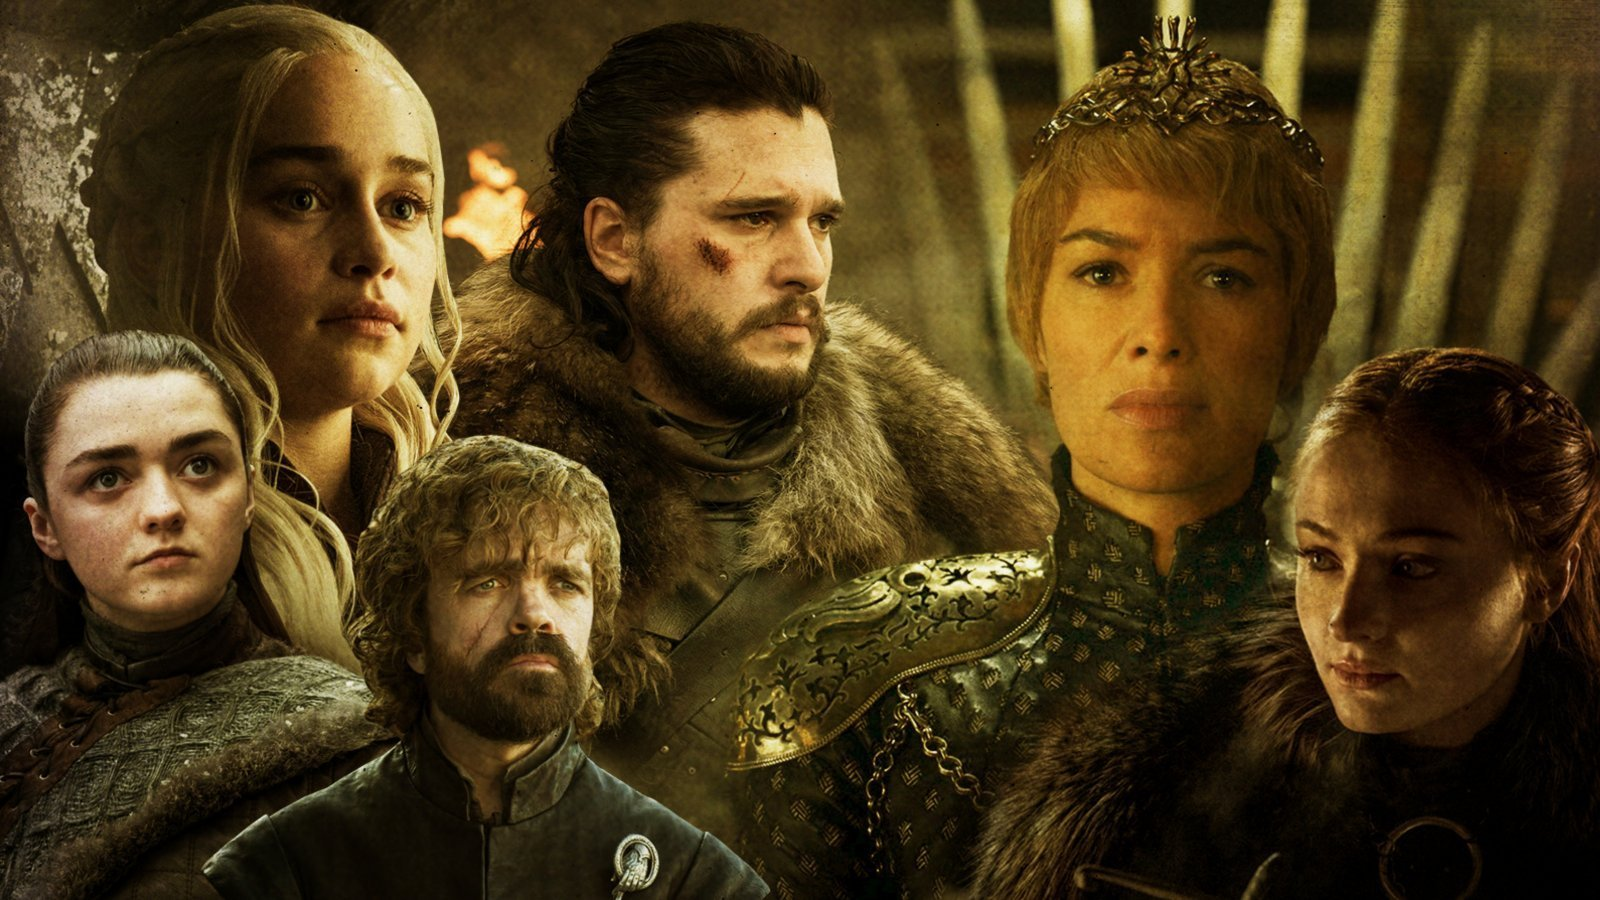 More Than 600,000 People Want 'Game Of Thrones' Final Season Remade thumbnail